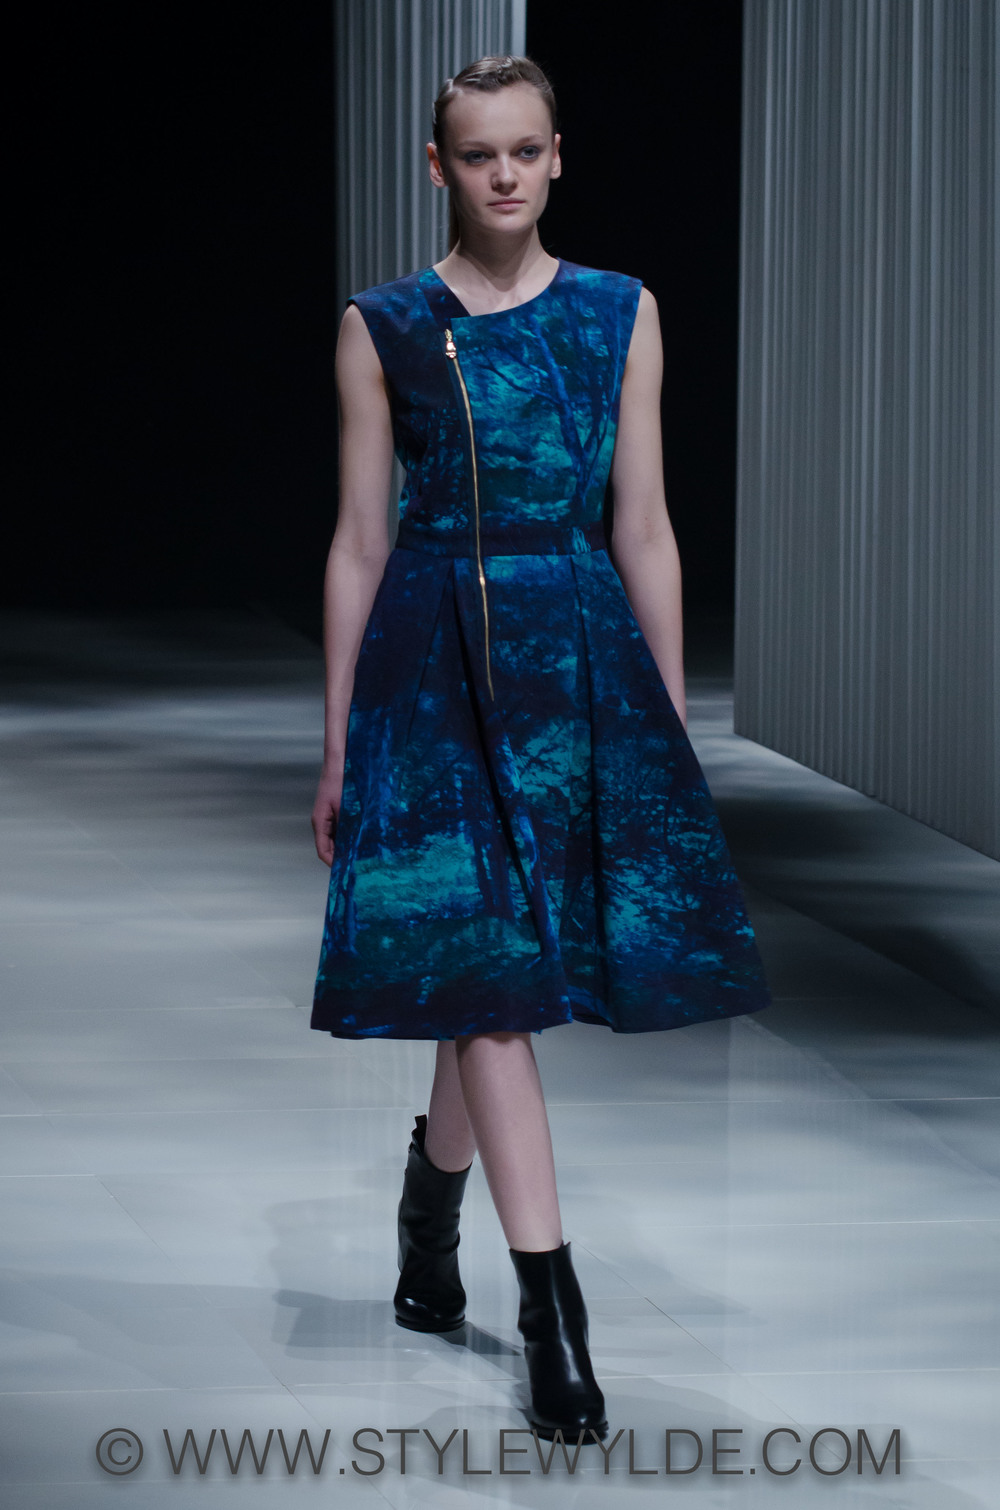 StyleWylde_Ujoh_AW14_story (1 of 1)-5.jpg